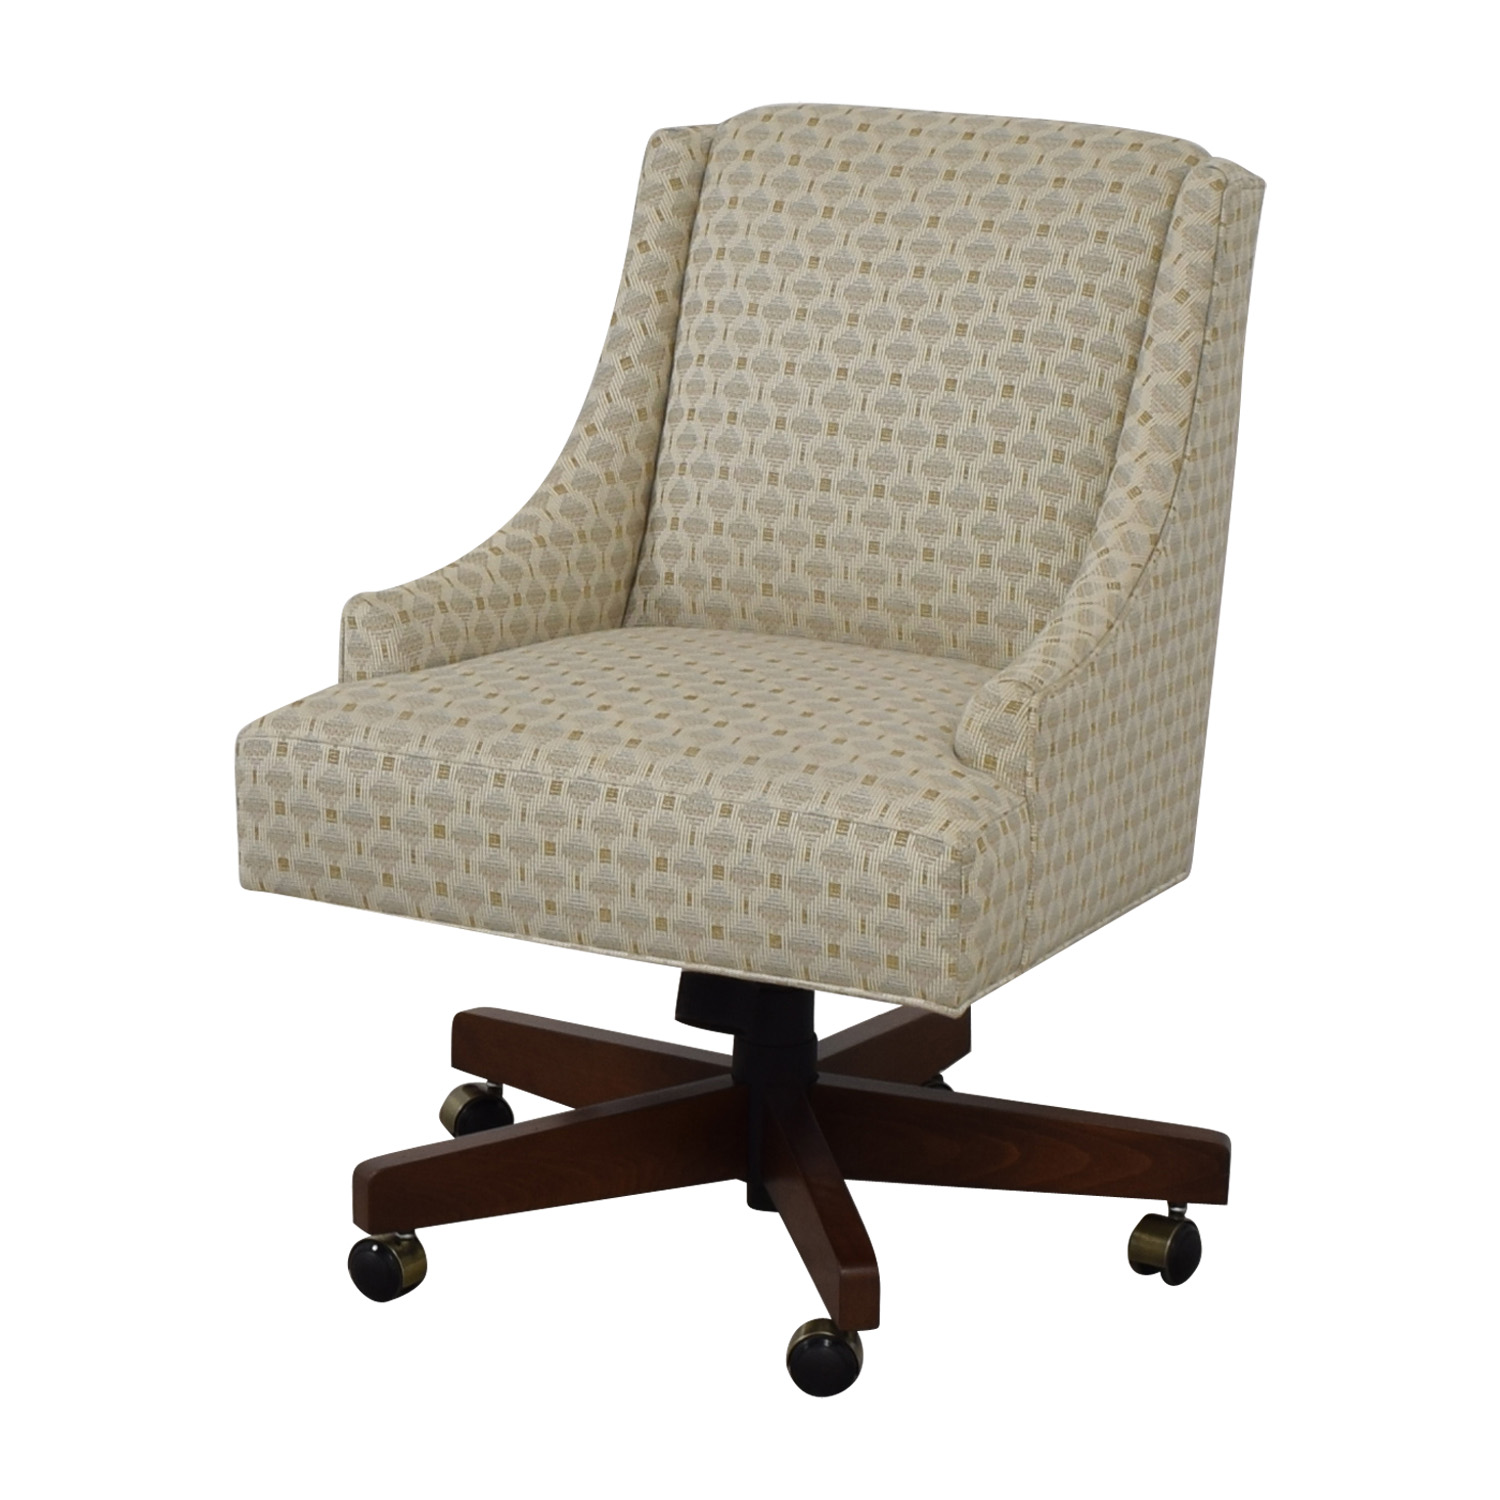 Ethan Allen Ethan Allen Beige Upholstered Office Chair on Castors coupon